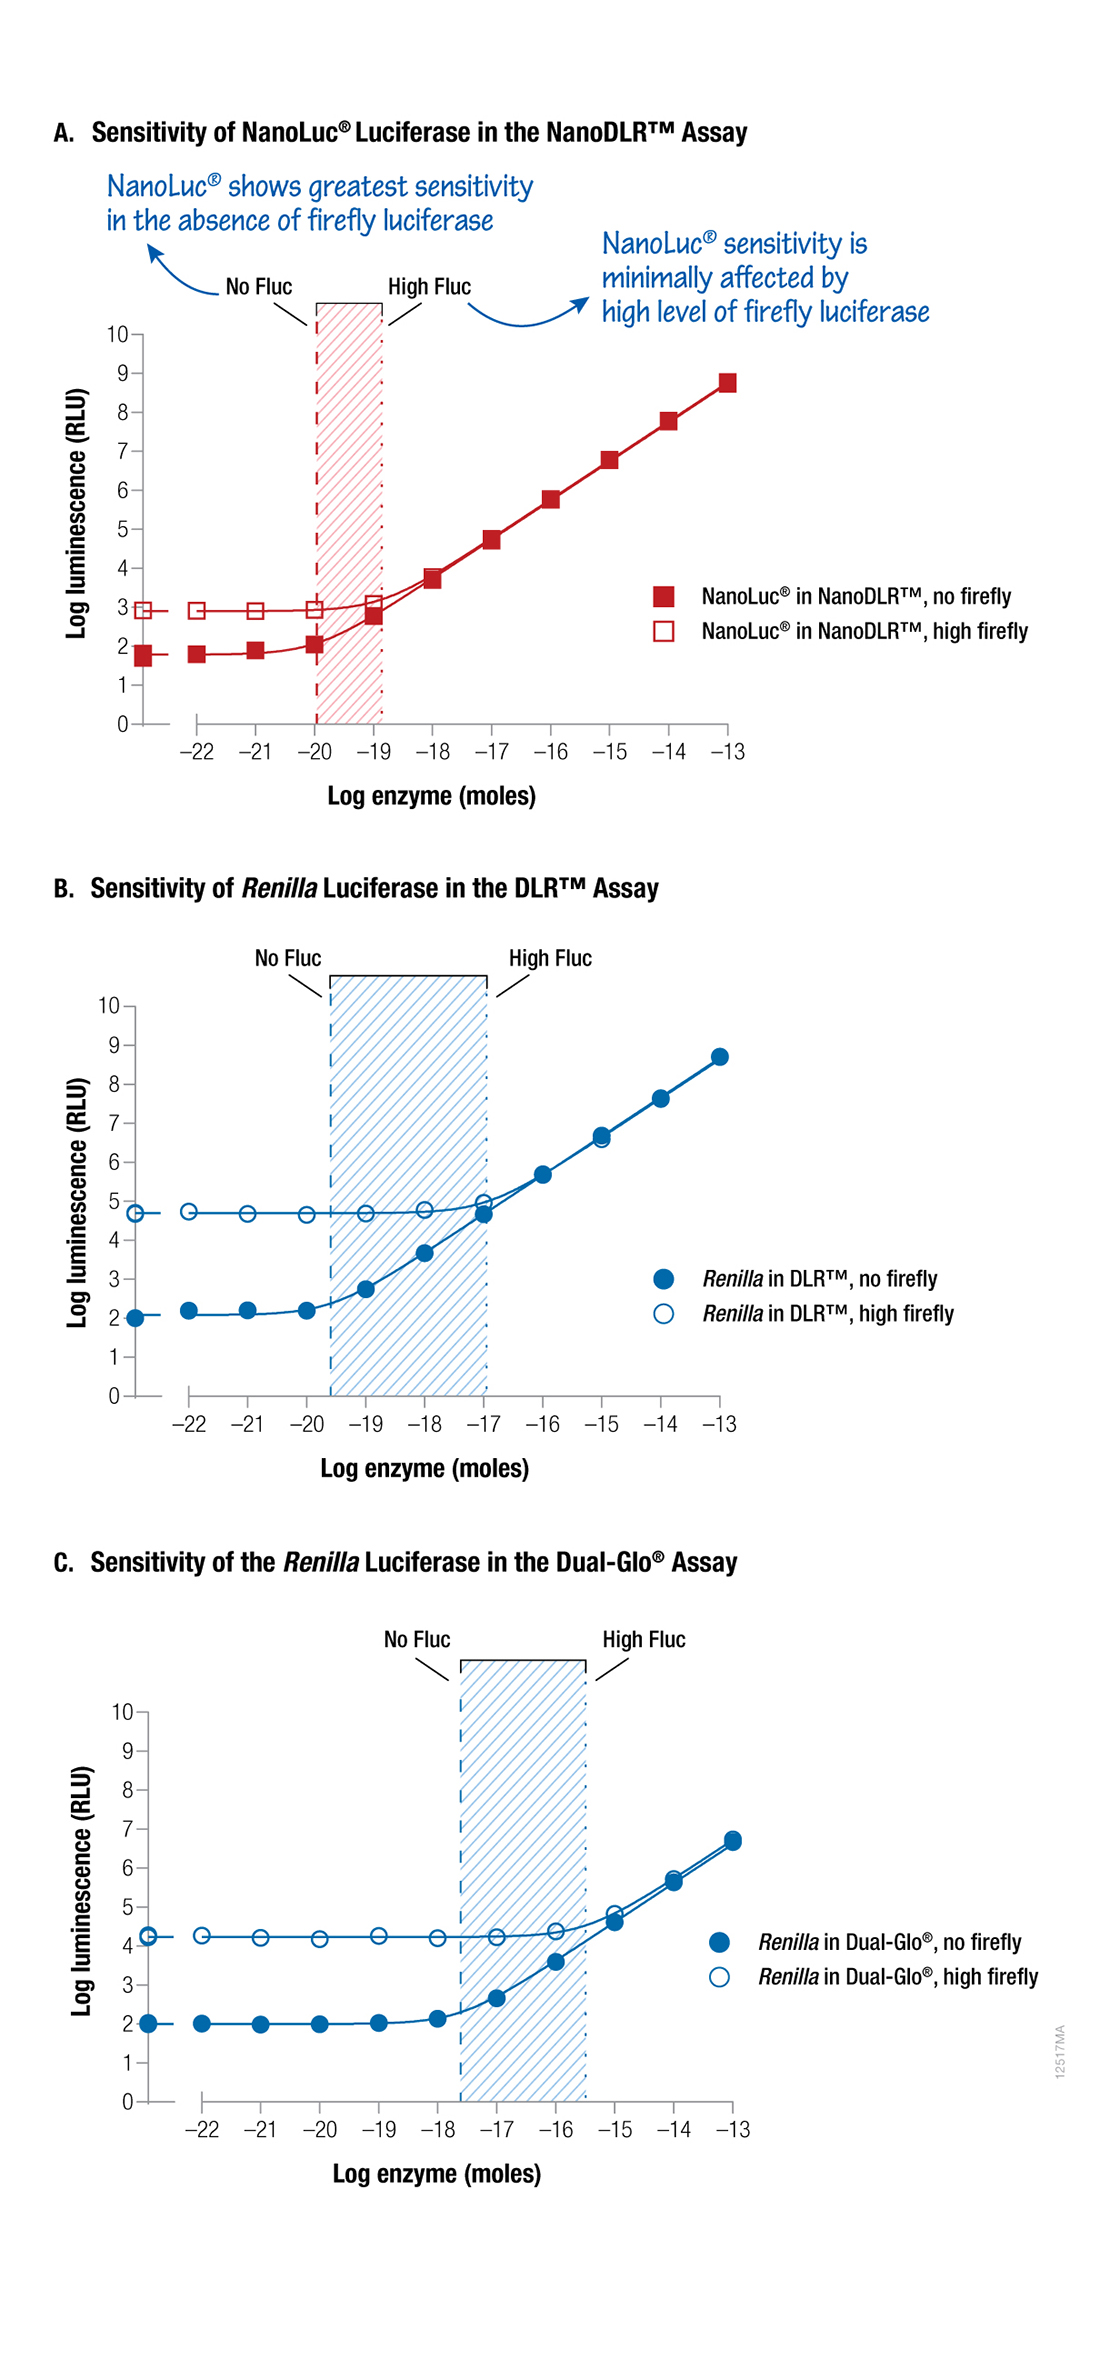 Sensivity of NanoLuc Lucifersase in the NanoDLR Assay compared to DLR and Dual-Glo Assays.